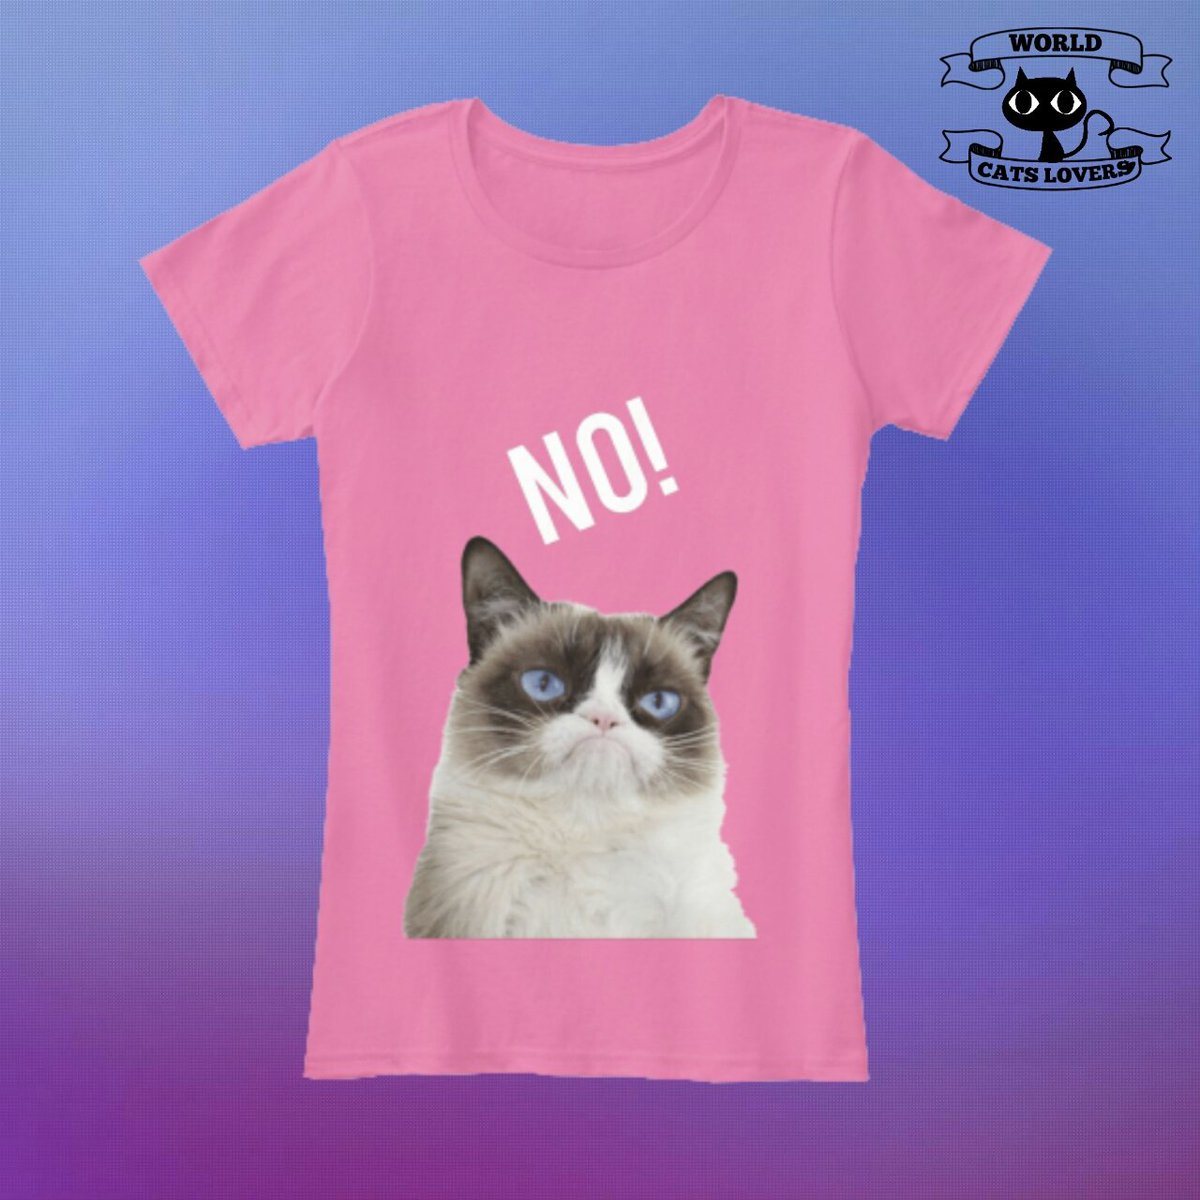 Do you like grumpy cat? This is for you! 😹😍👚👇 Enter at link in my profile and get it now!😍👚 #Grumpycat #grumpycatshirt #worldcatslovers